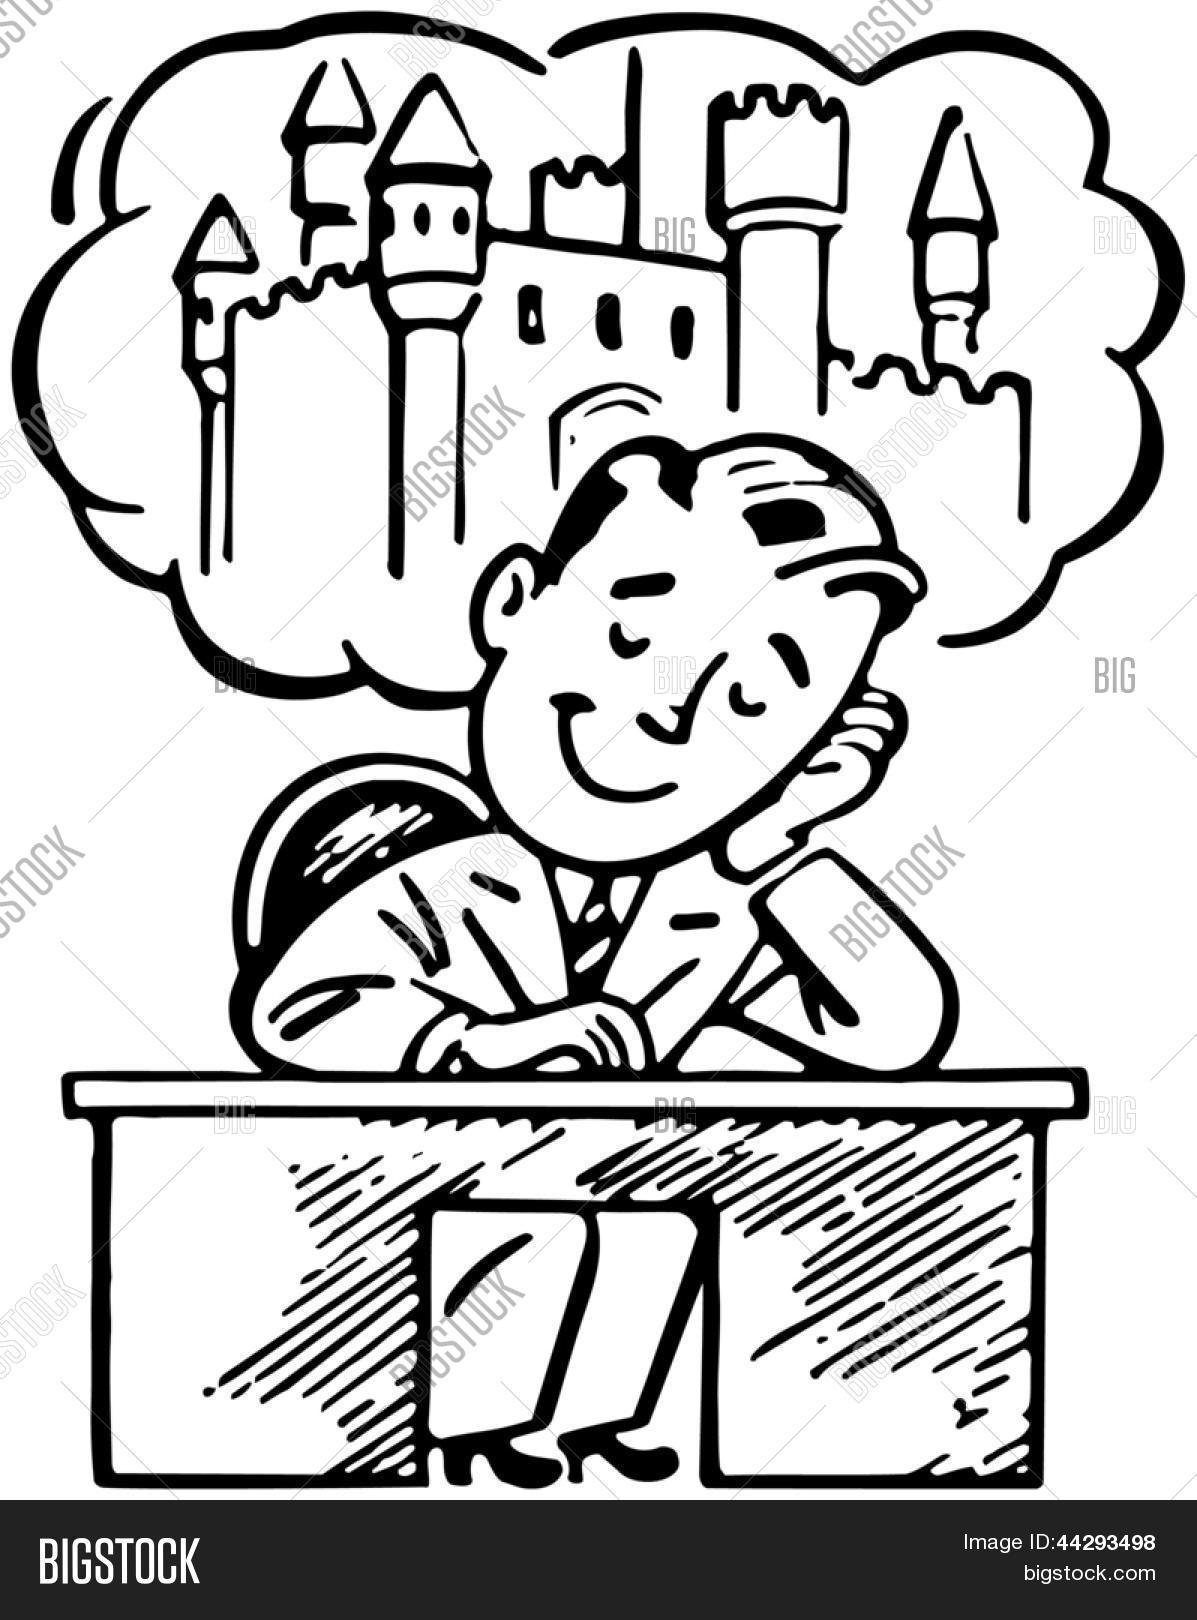 day dreaming clipart